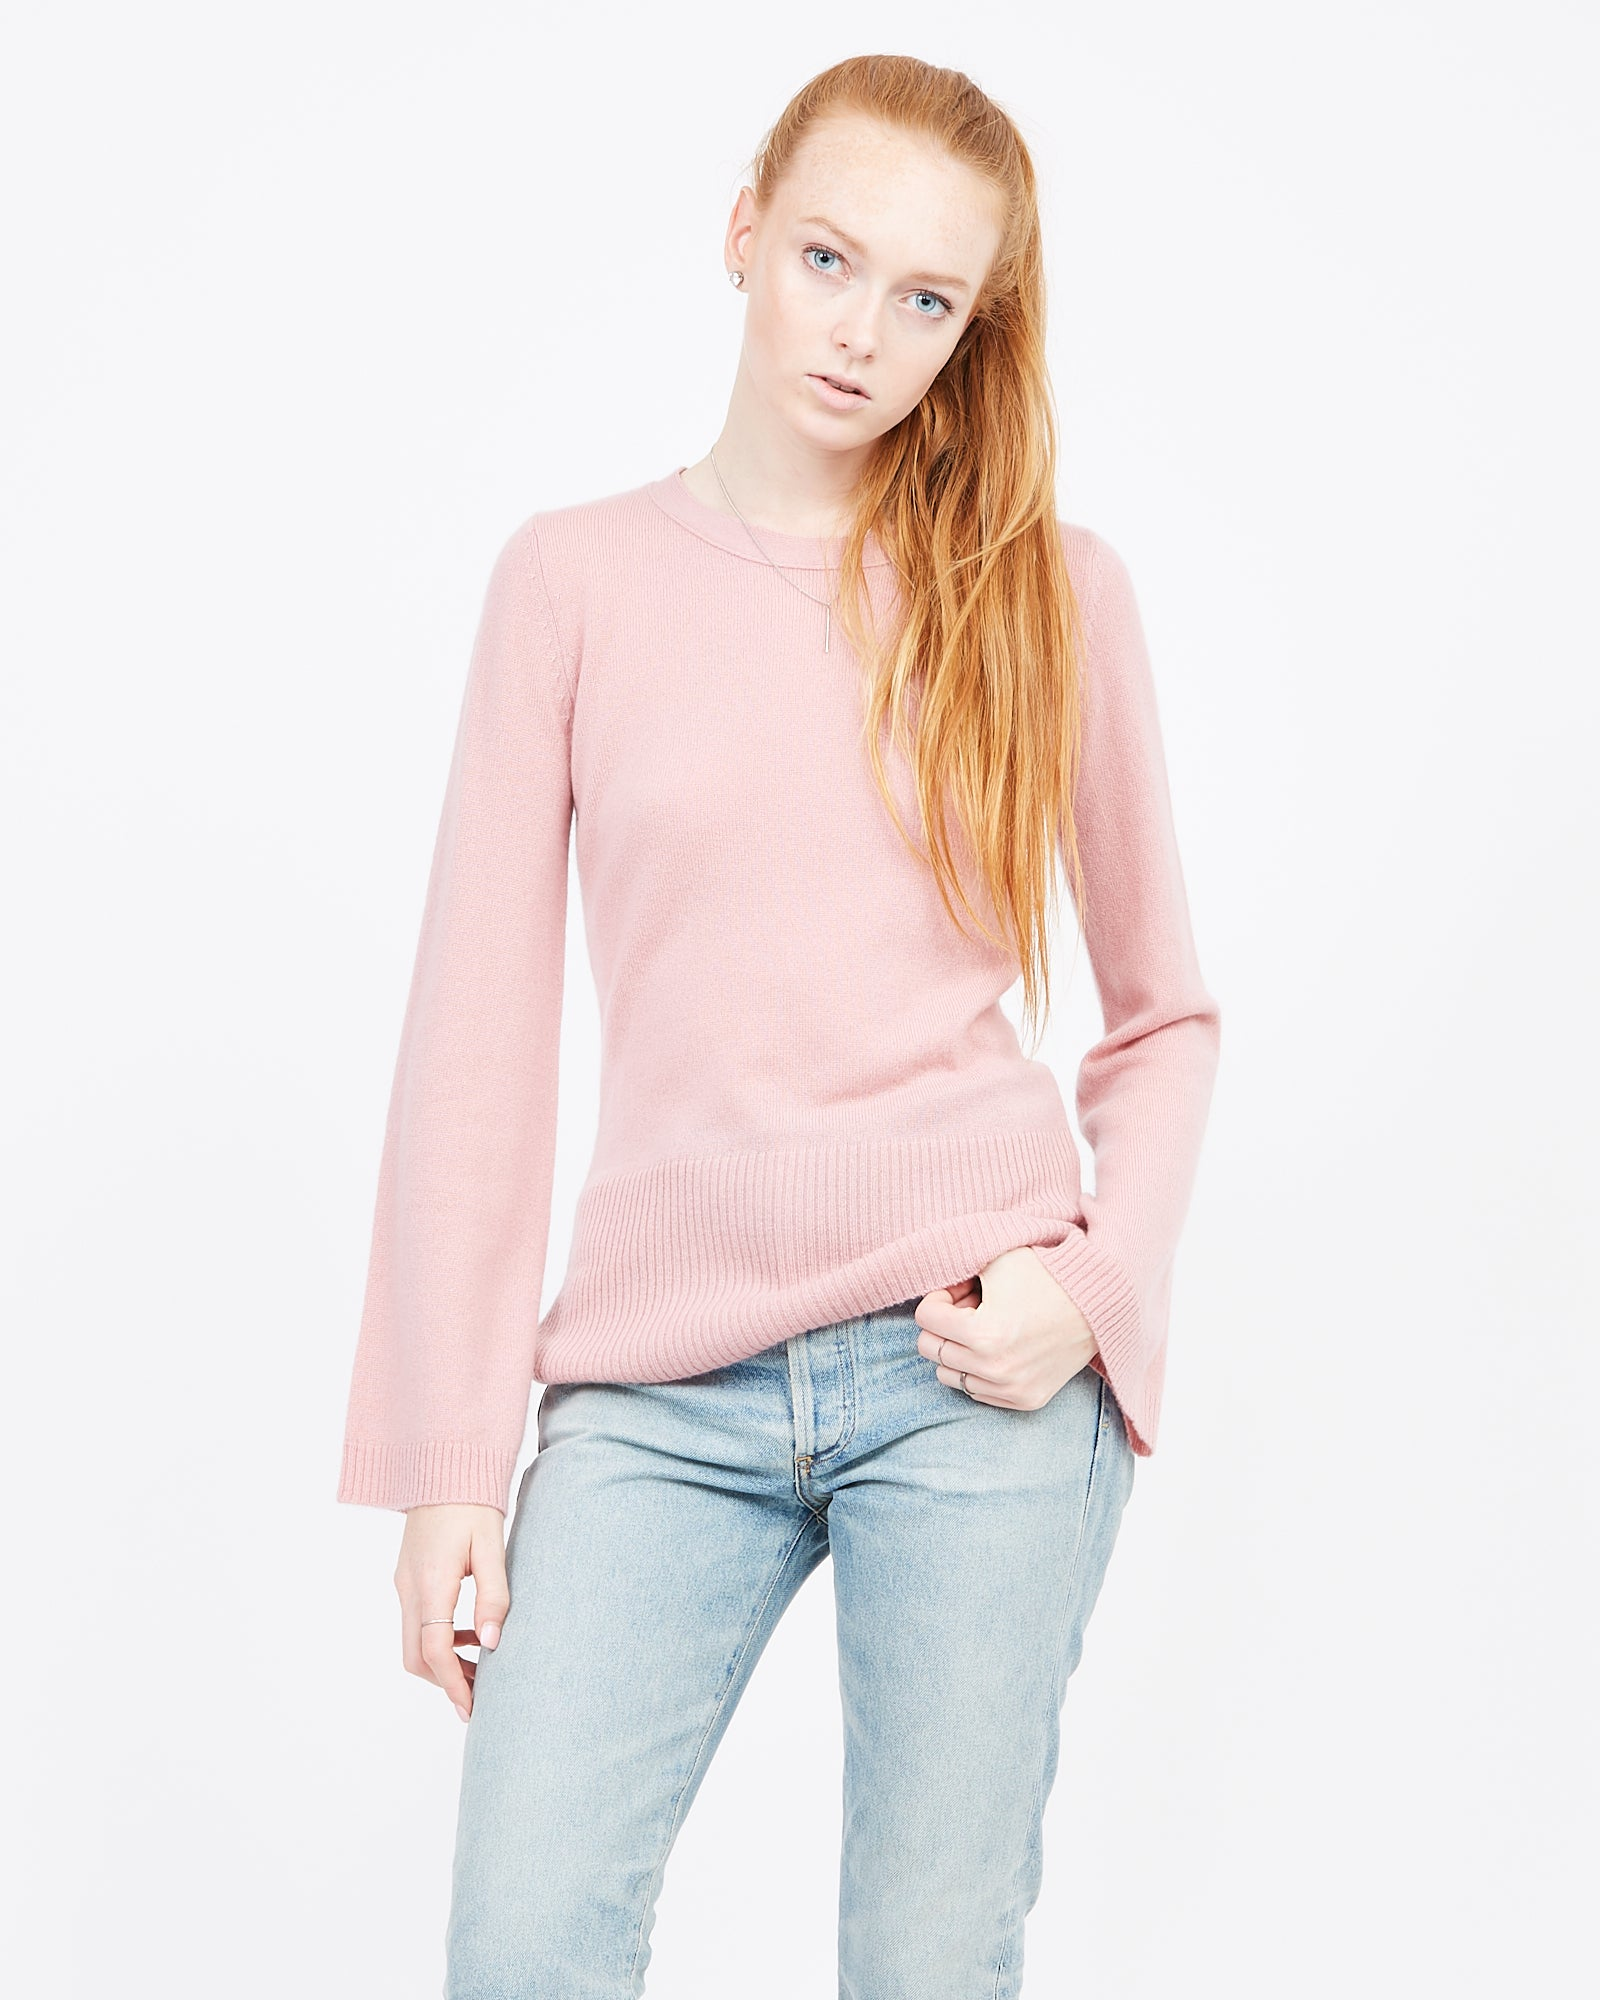 Bell Sleeved crew neck sweater